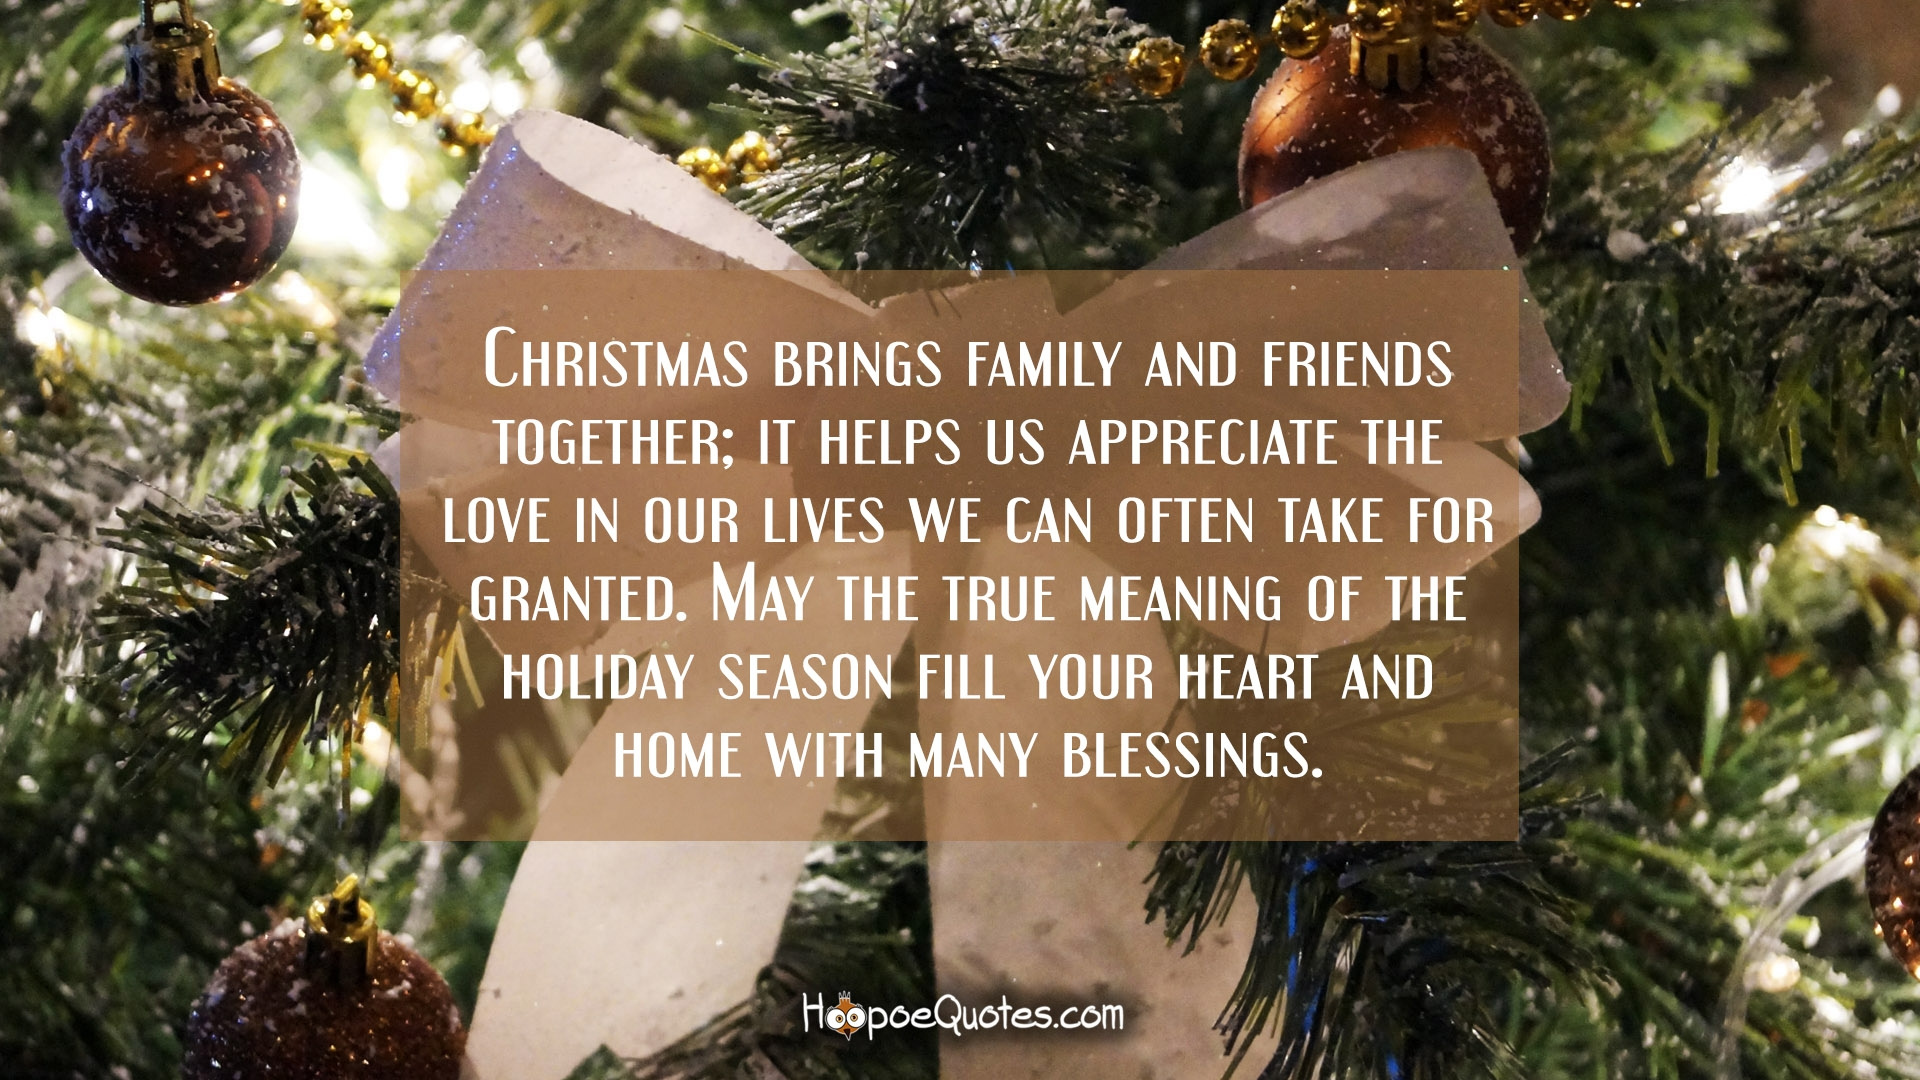 Inspirational Christmas Messages Hoopoequotes